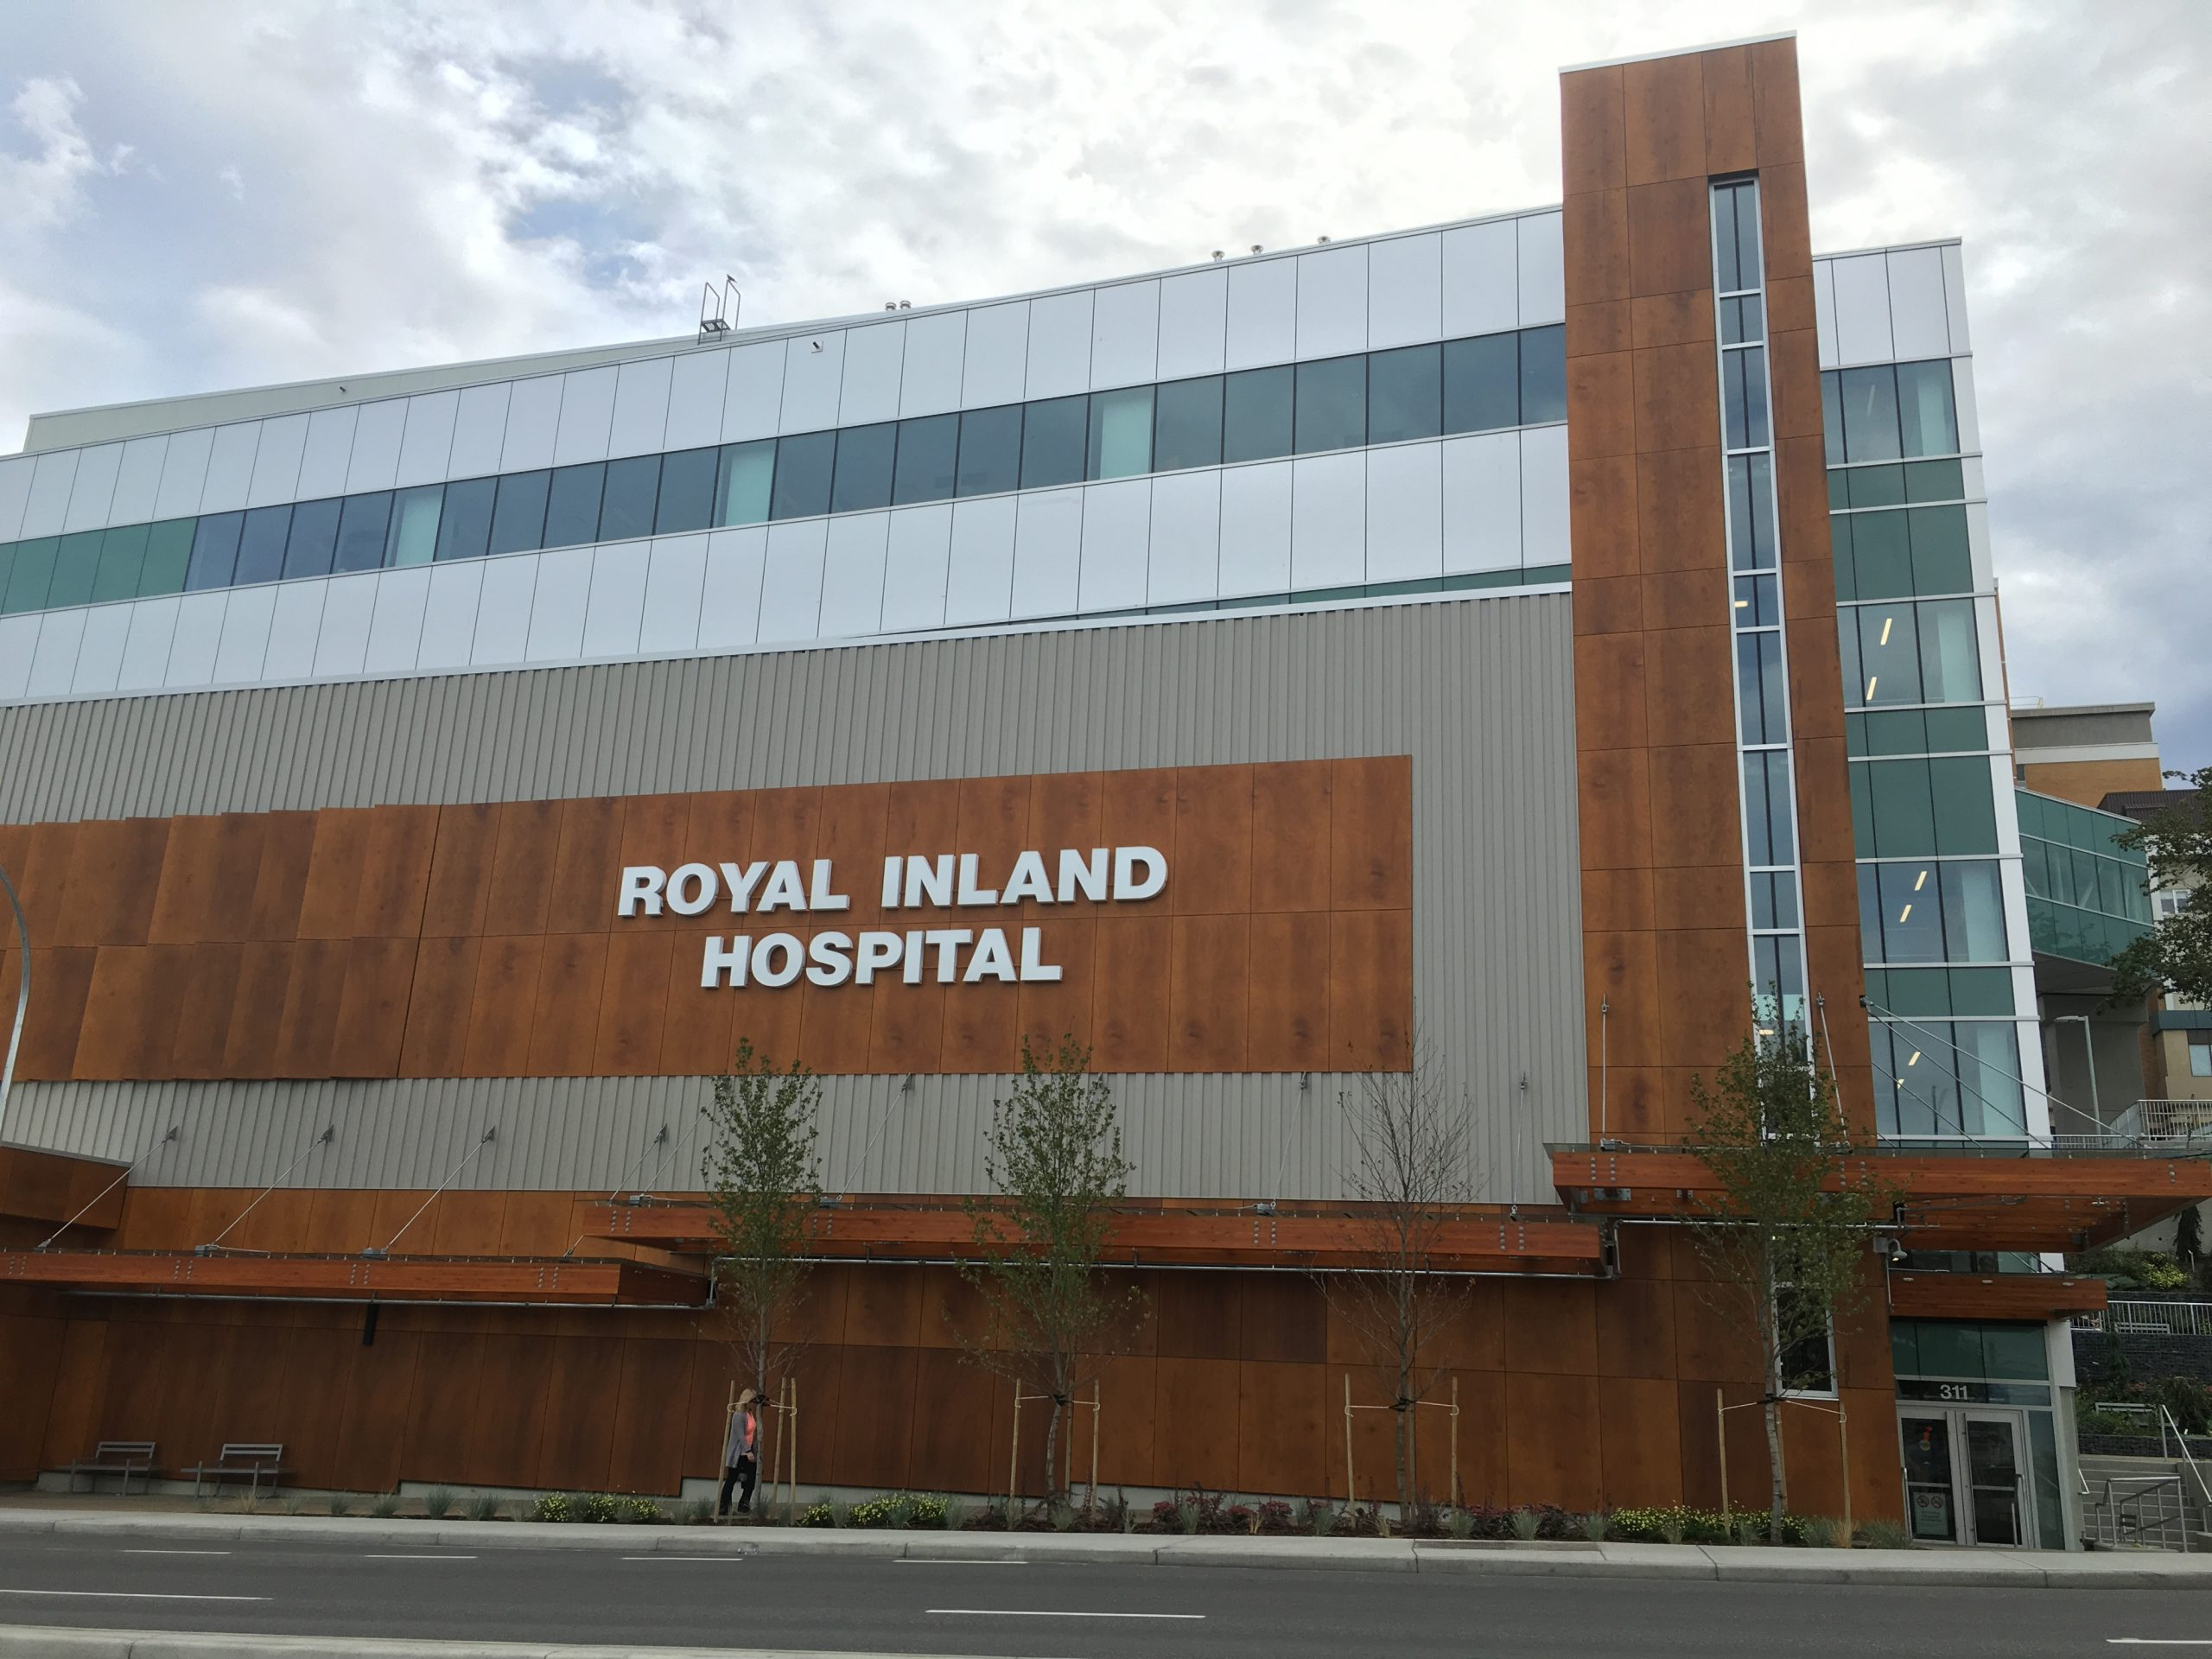 Next major development on the massive upgrade of Royal Inland Hospital coming soon